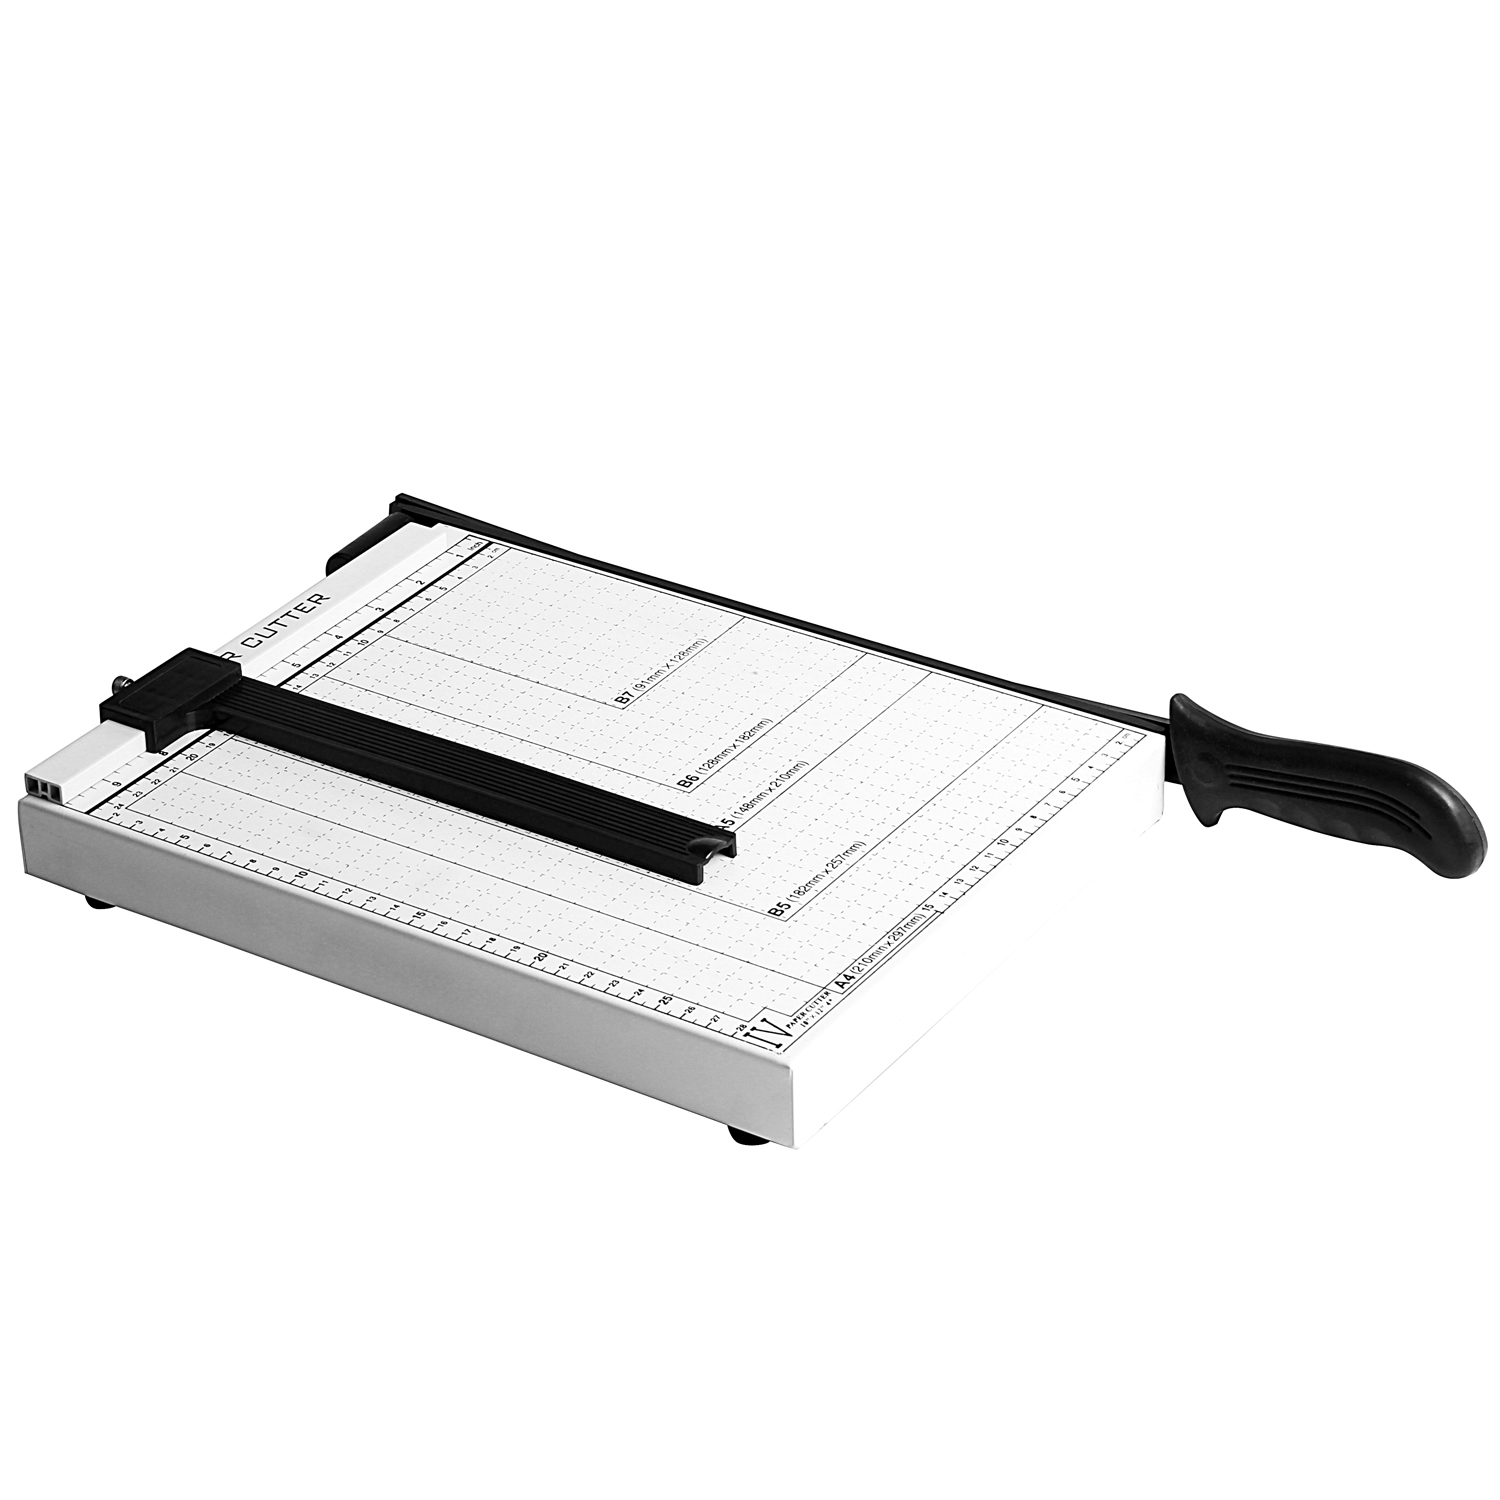 Cutting Supplies Office & School Supplies Popular Brand Mini Desktop Manual Paper Hand Shredder Cutting For Office Home A6 A4 Paper Paper File Strip Suitable For Men And Women Of All Ages In All Seasons